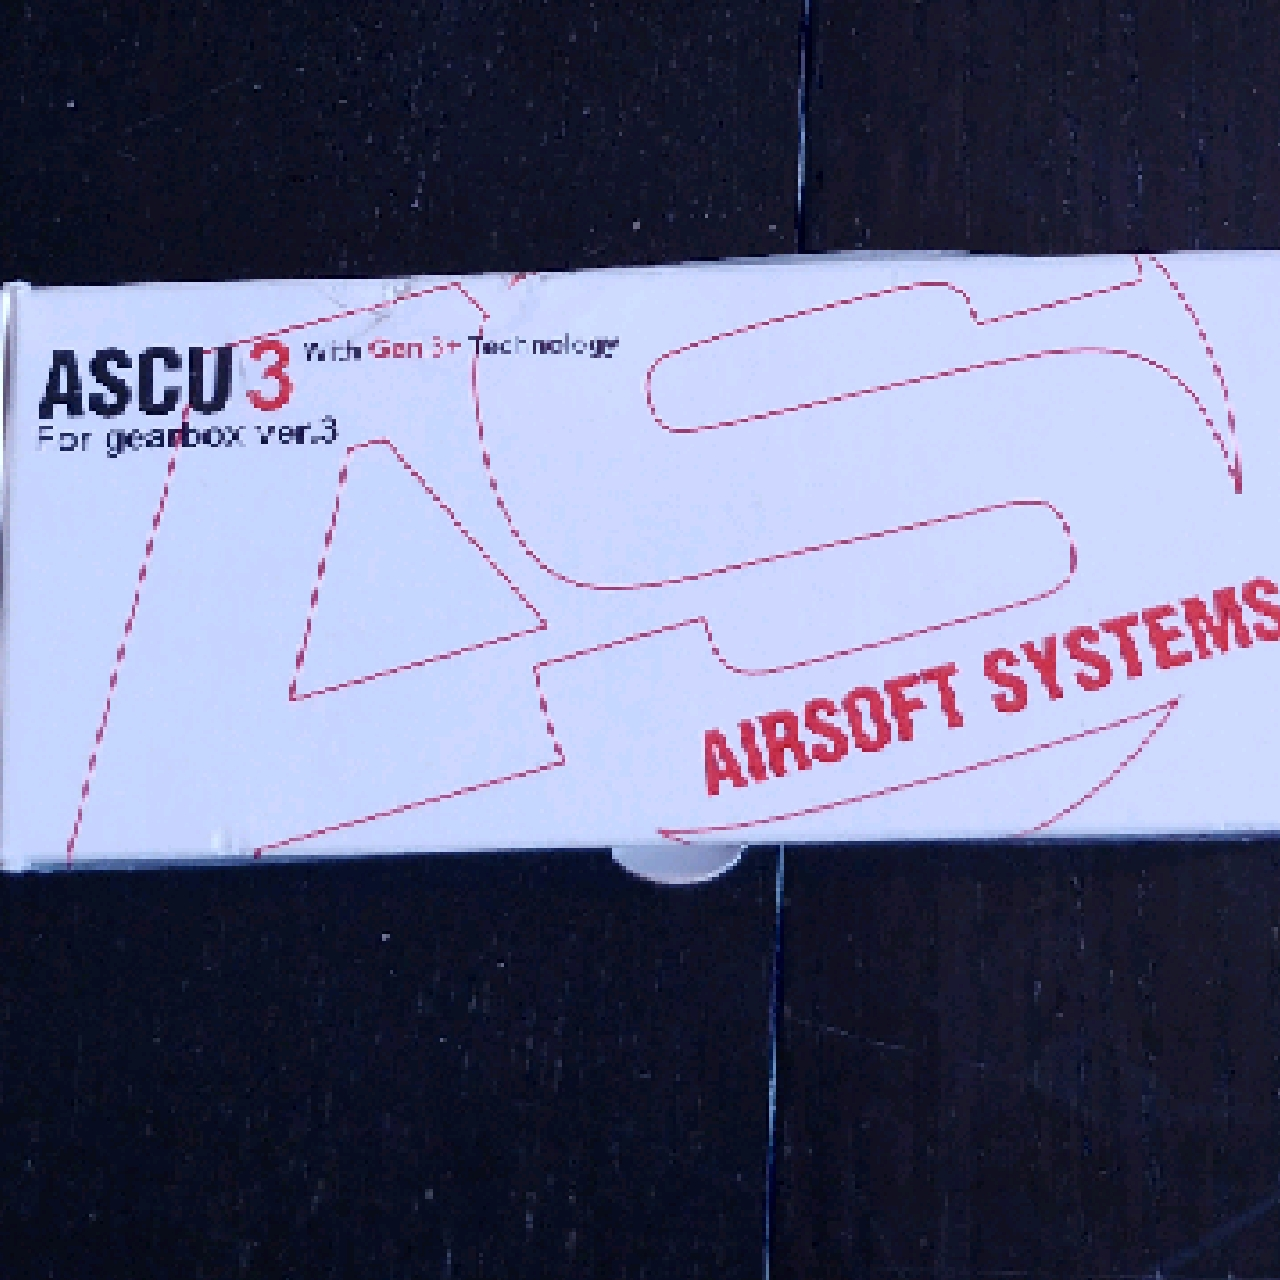 Airsoft systems ASCU 3 för V3-gearbox